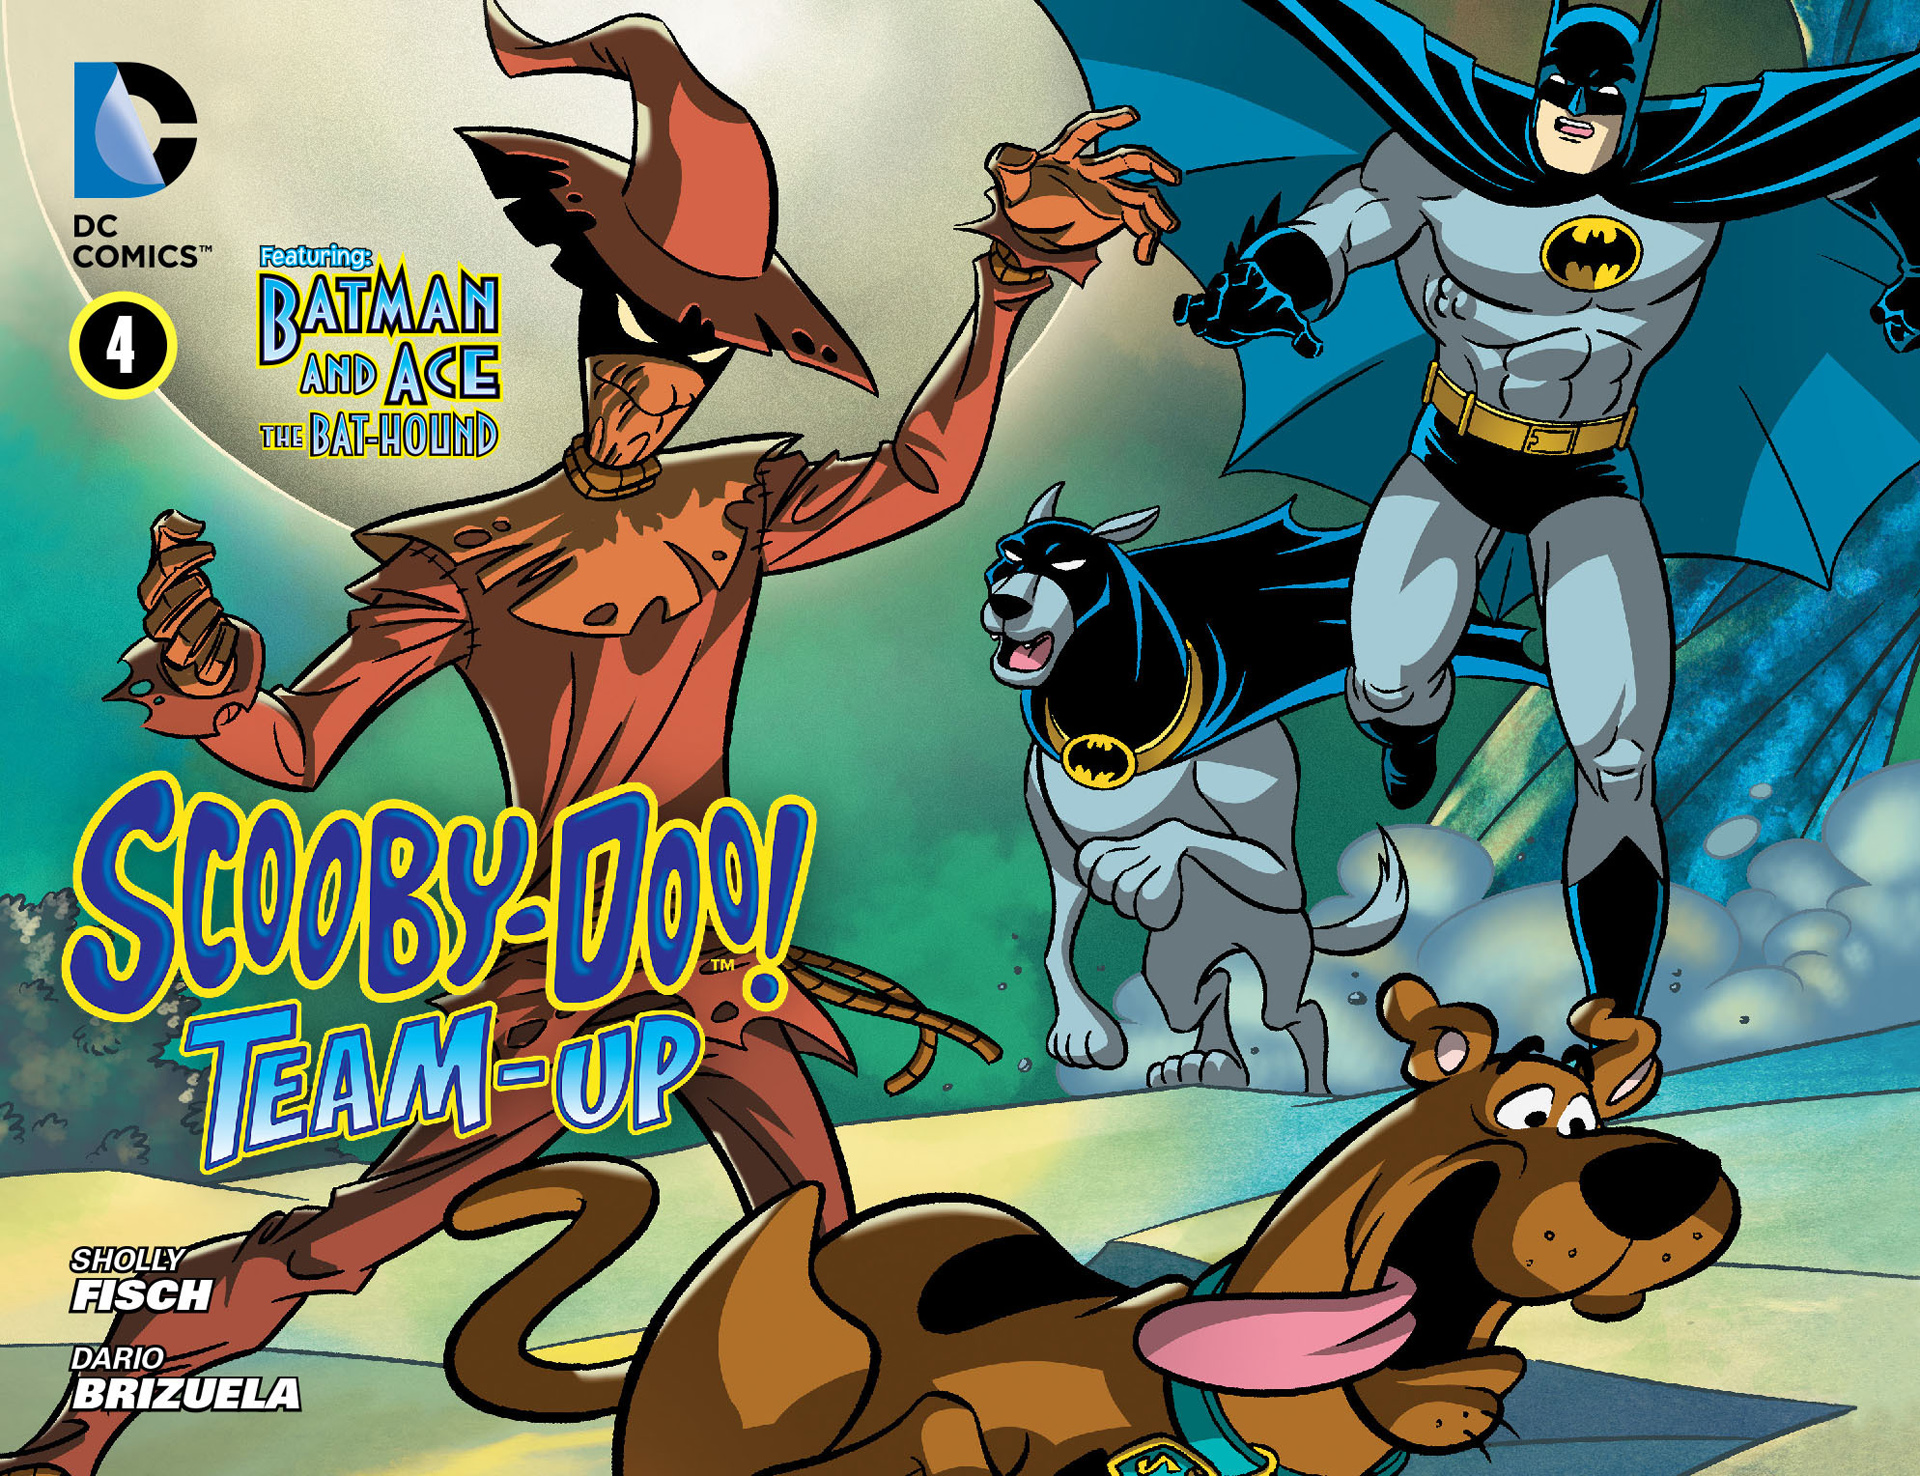 Read online Scooby-Doo! Team-Up comic -  Issue #4 - 1